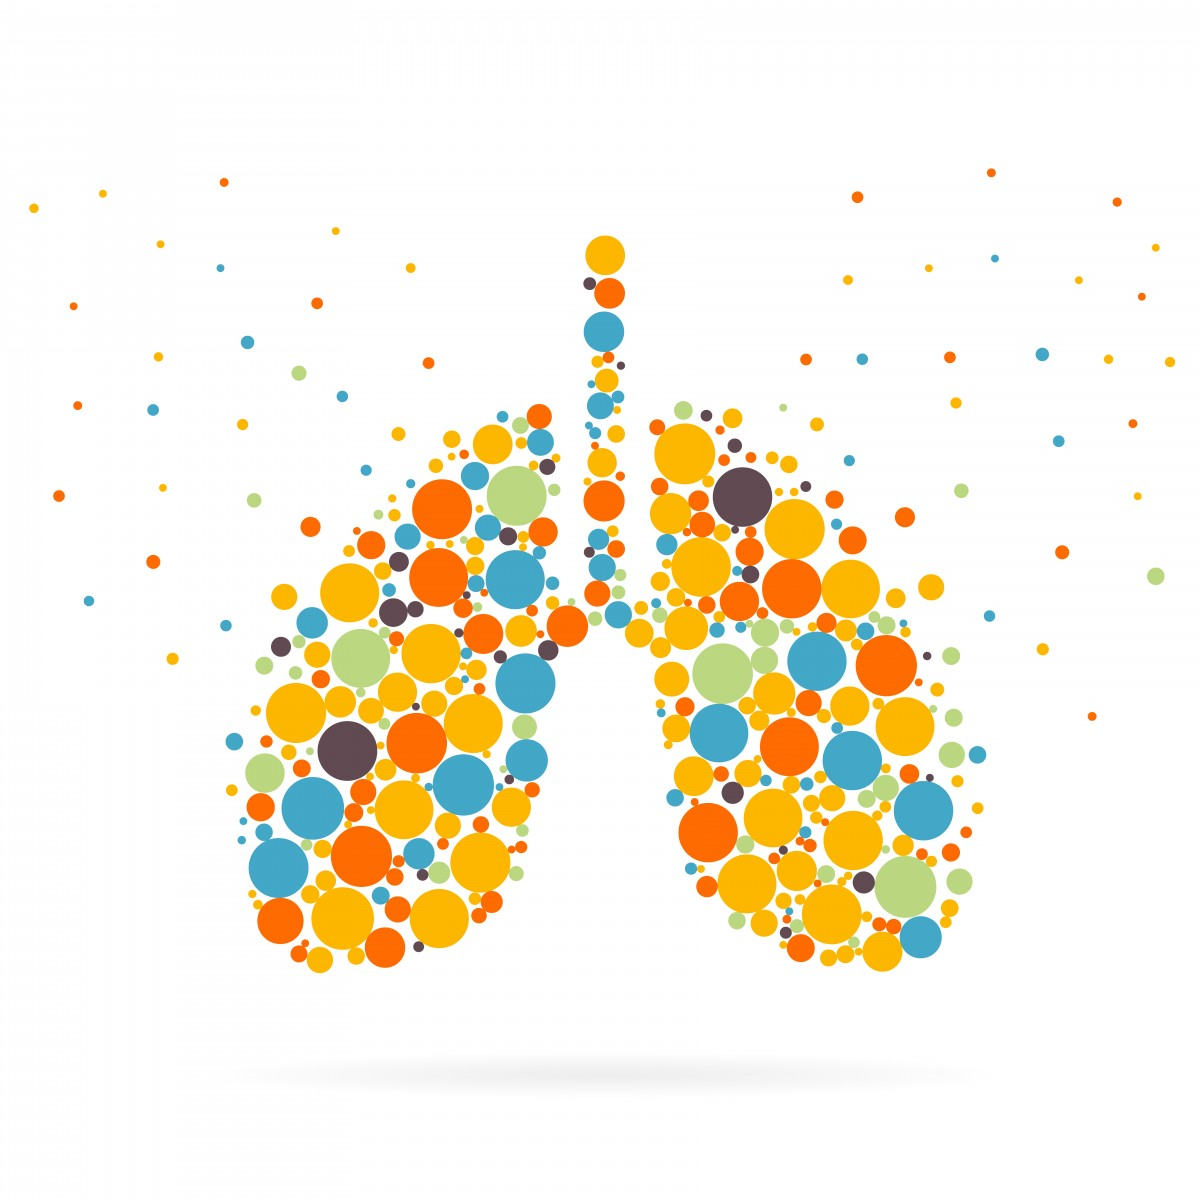 Exacerbations in Non-cystic Fibrosis Bronchiectasis Explored in Observational Cohort Study